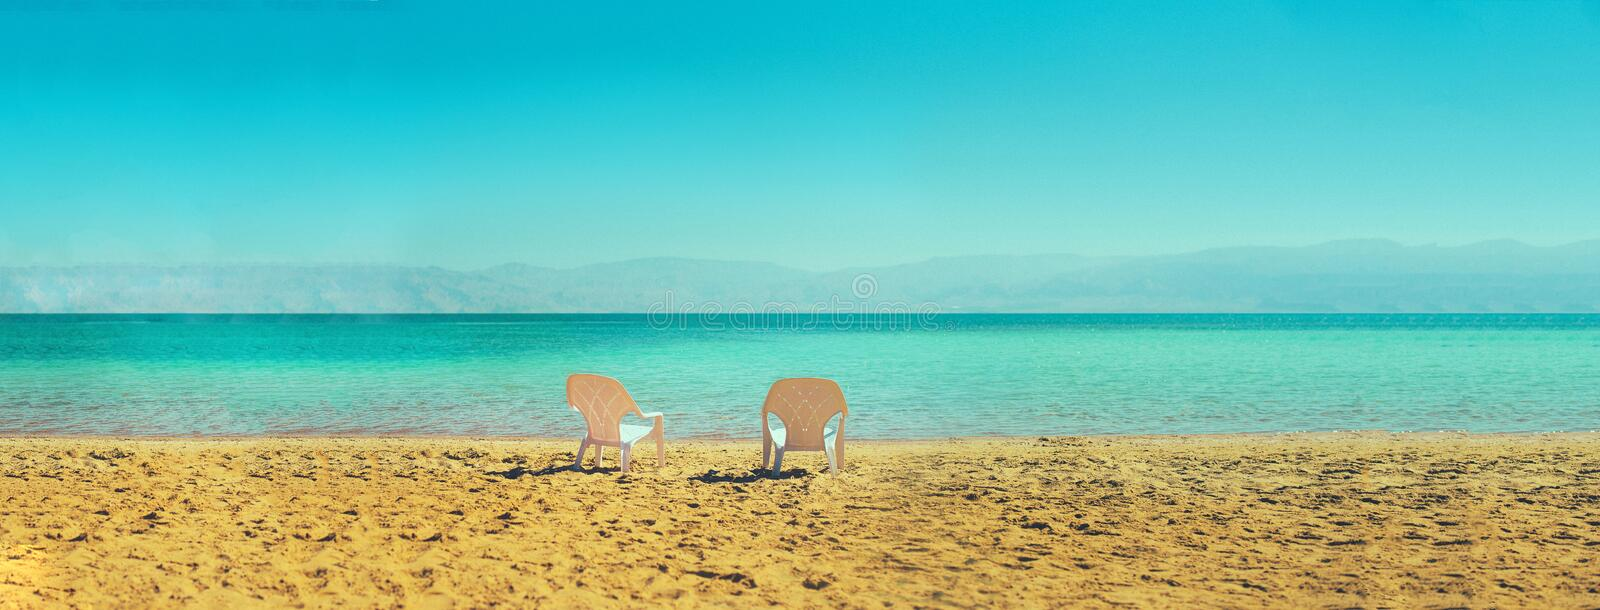 Two white beach chairs on seaside. Copy space. Summer, holiday and travel concept. Banner stock images